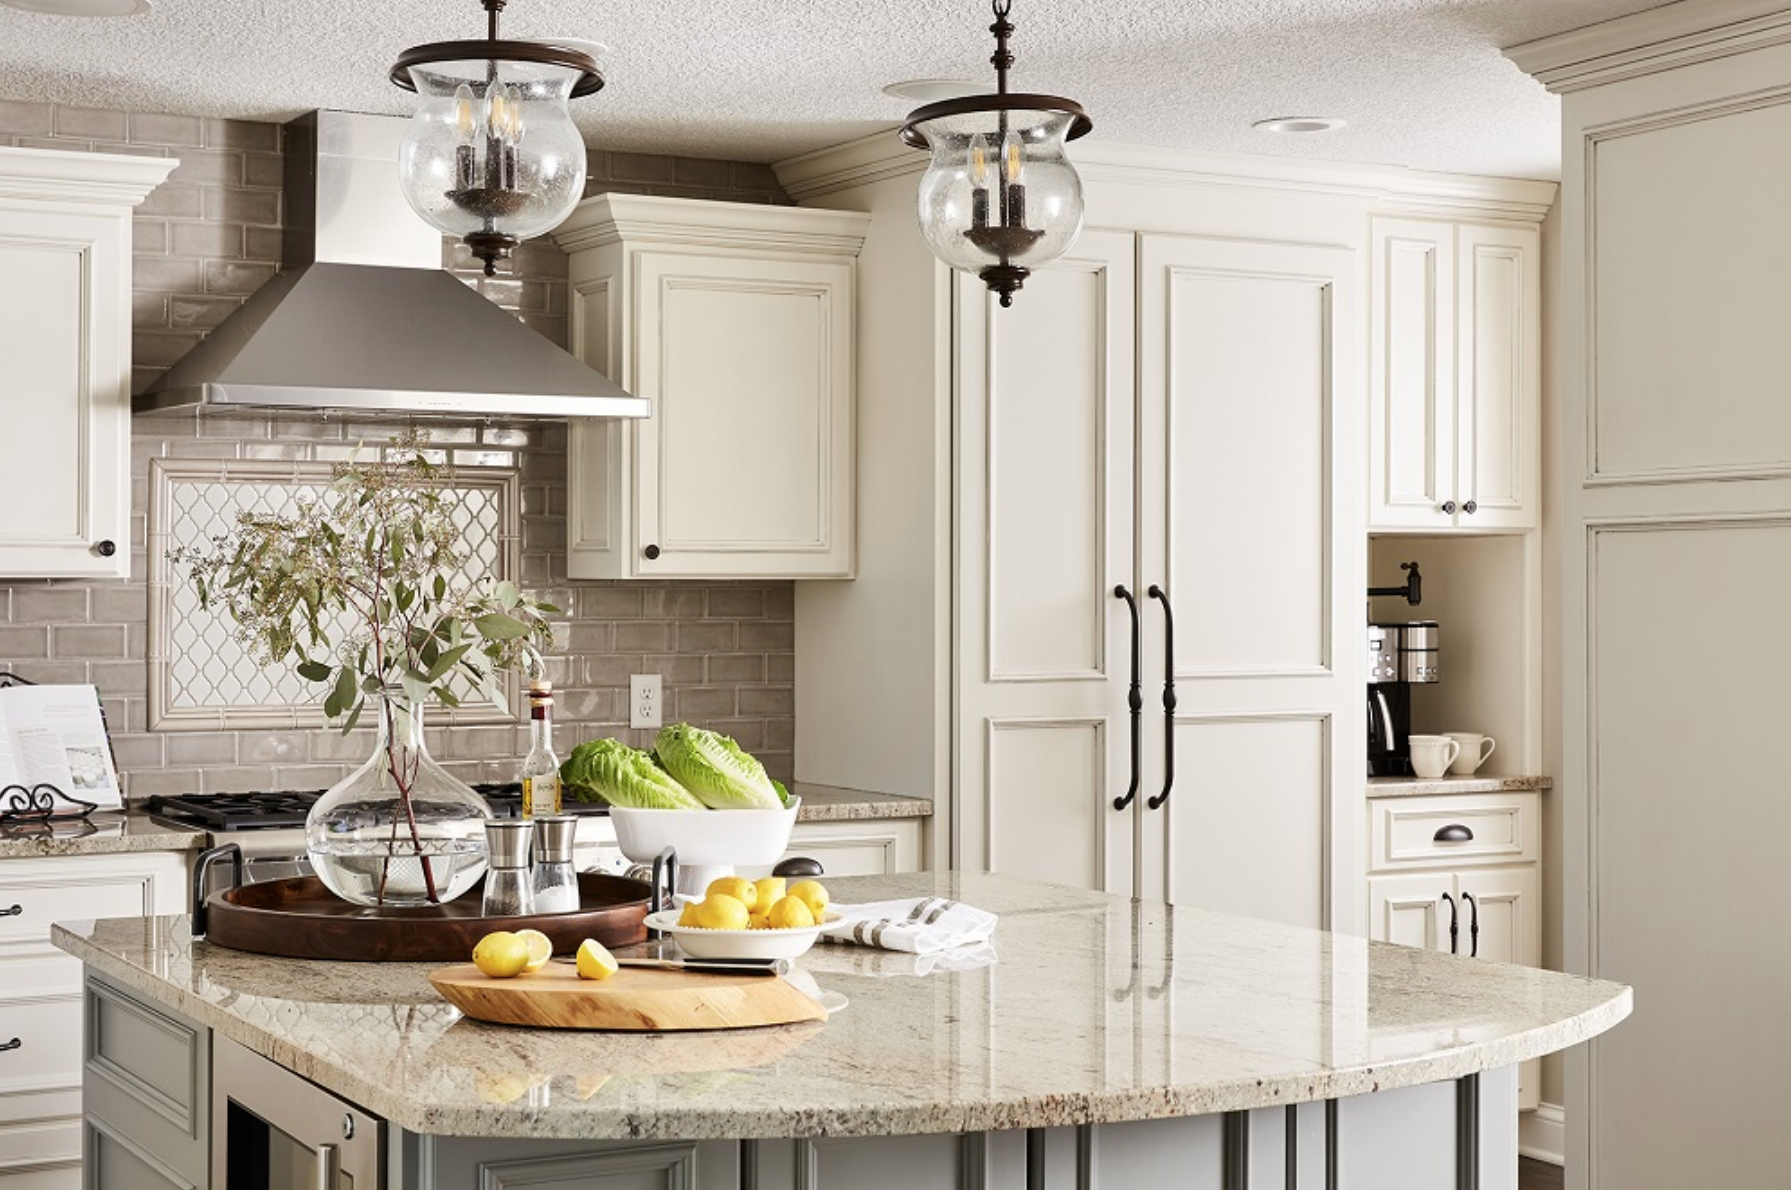 A hidden refrigerator was positioned behind custom cabinet panels, giving the kitchen a cohesive and bright white look.